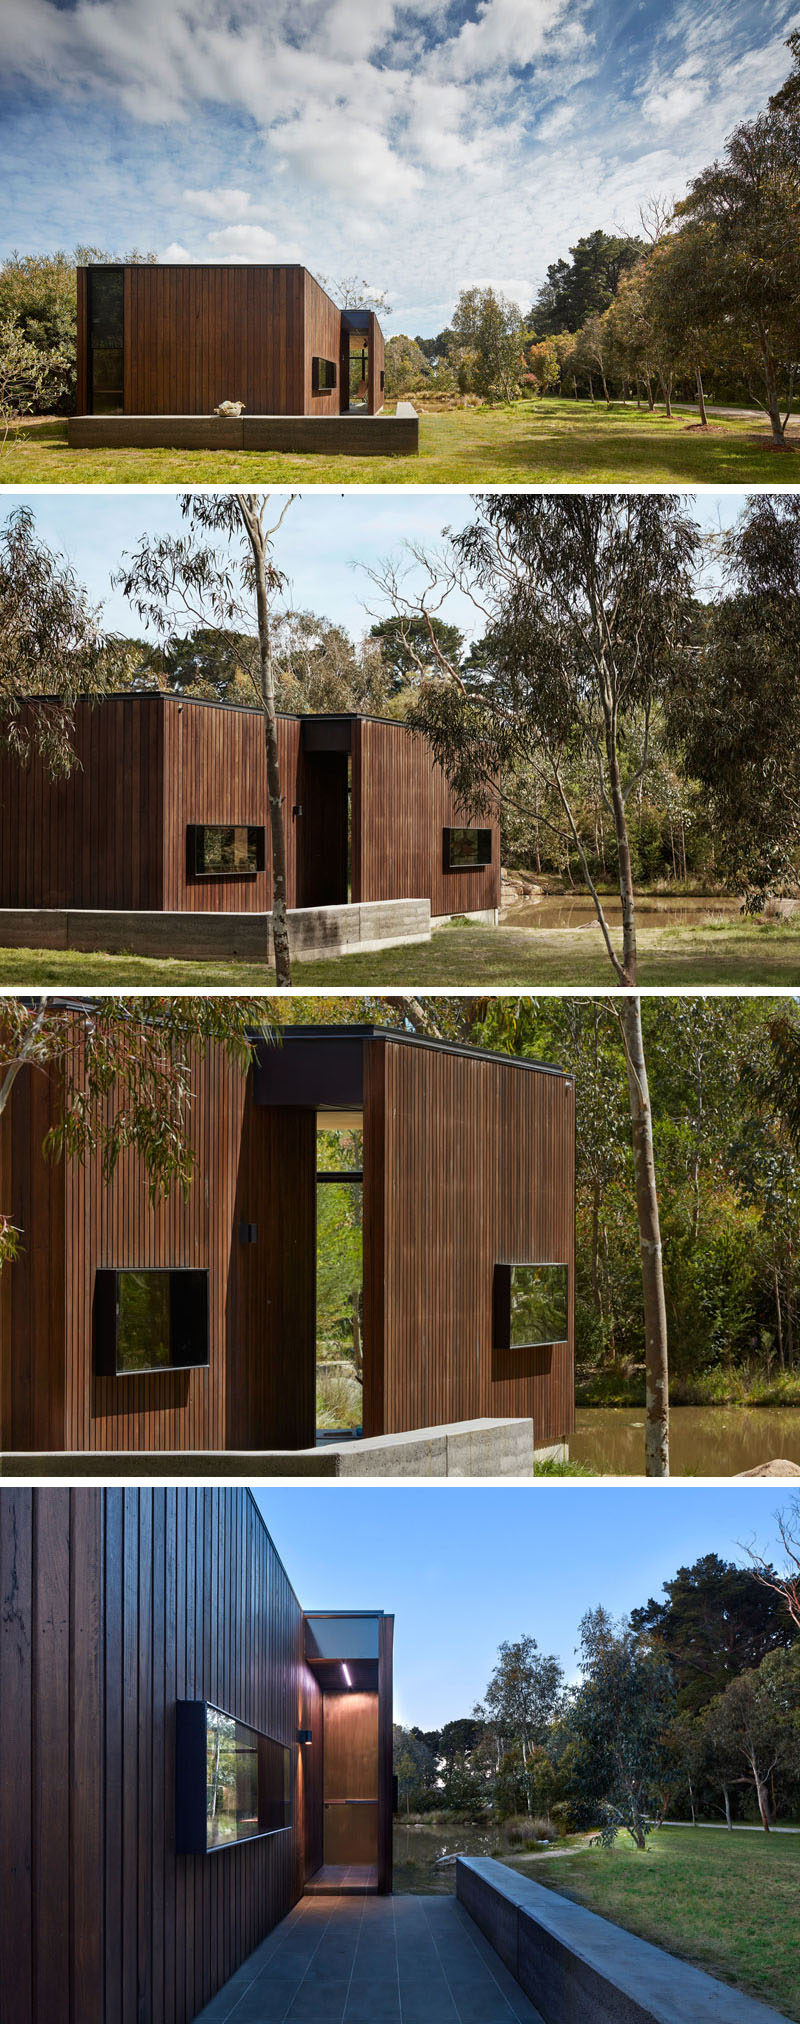 A low wall guides you from the grassy yard to the entrance of this wood covered backyard studio.